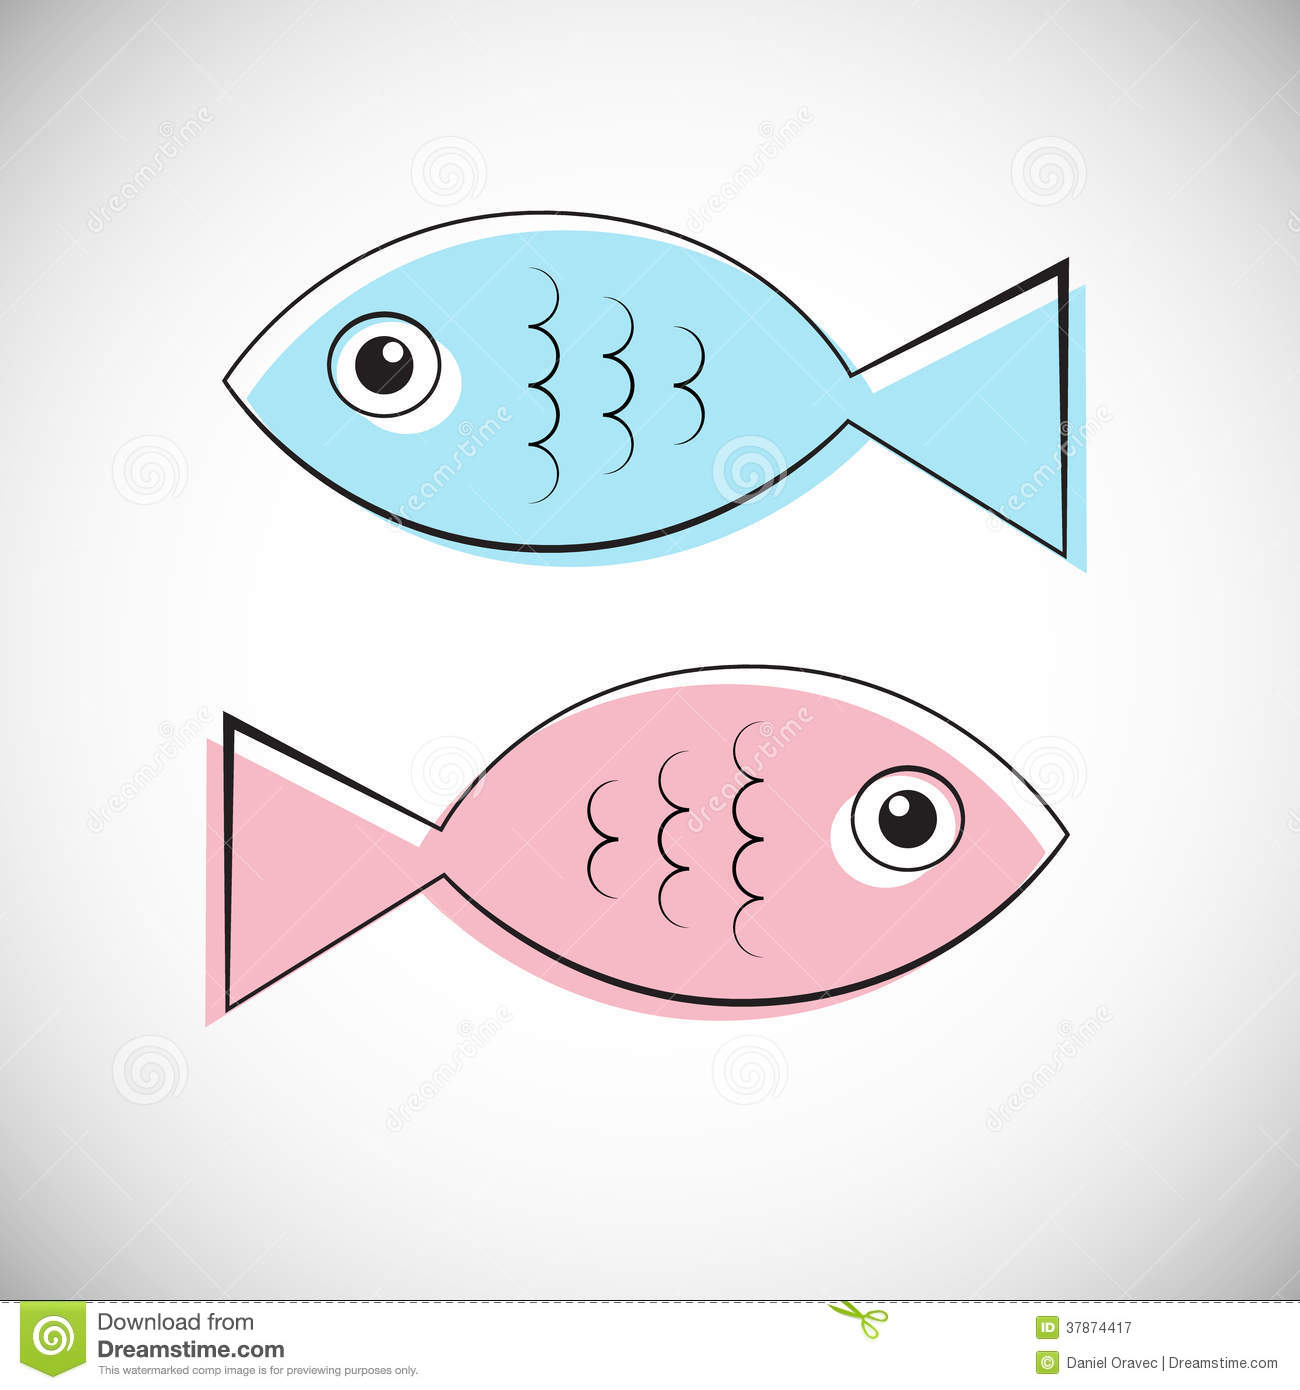 blue and pink fish illustration isolated on light grey background, Reel Combo